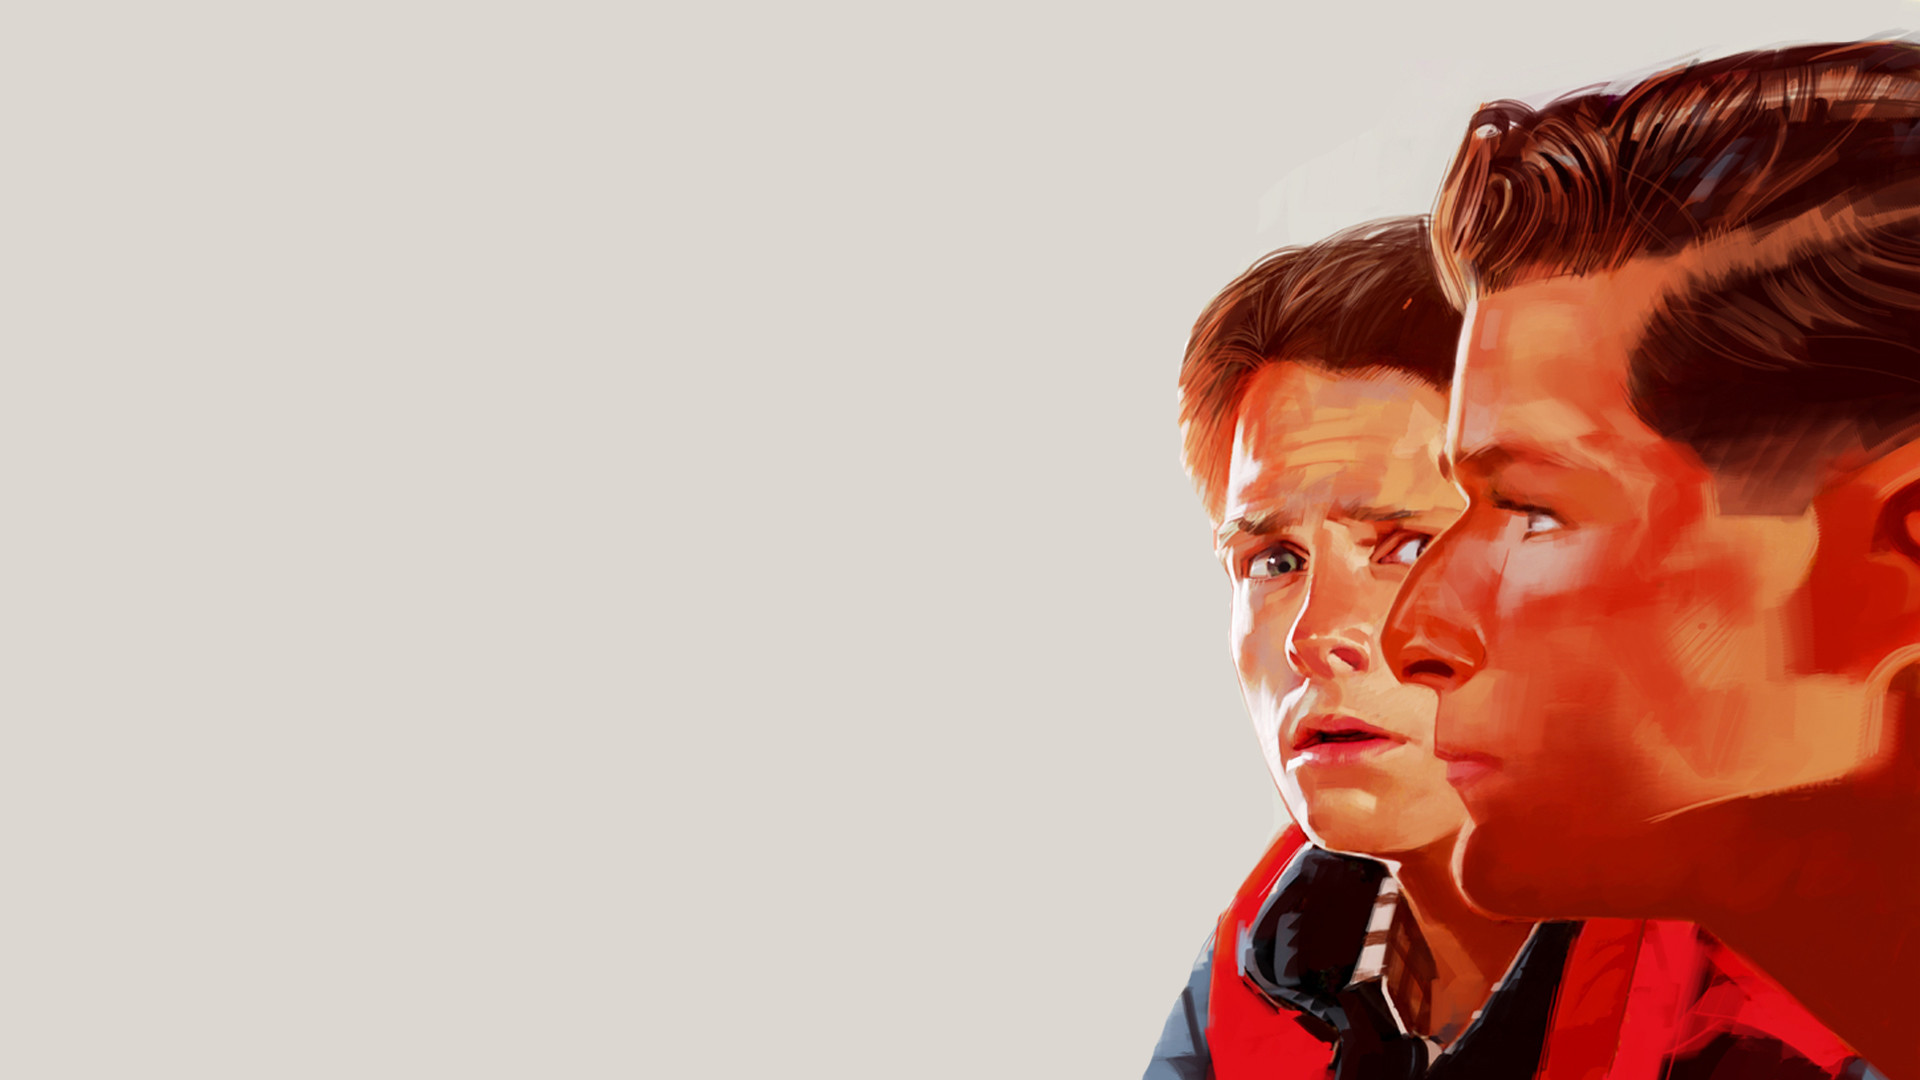 1920x1080  Back to the Future Drawing Michael J Fox Marty McFly HD Wallpaper